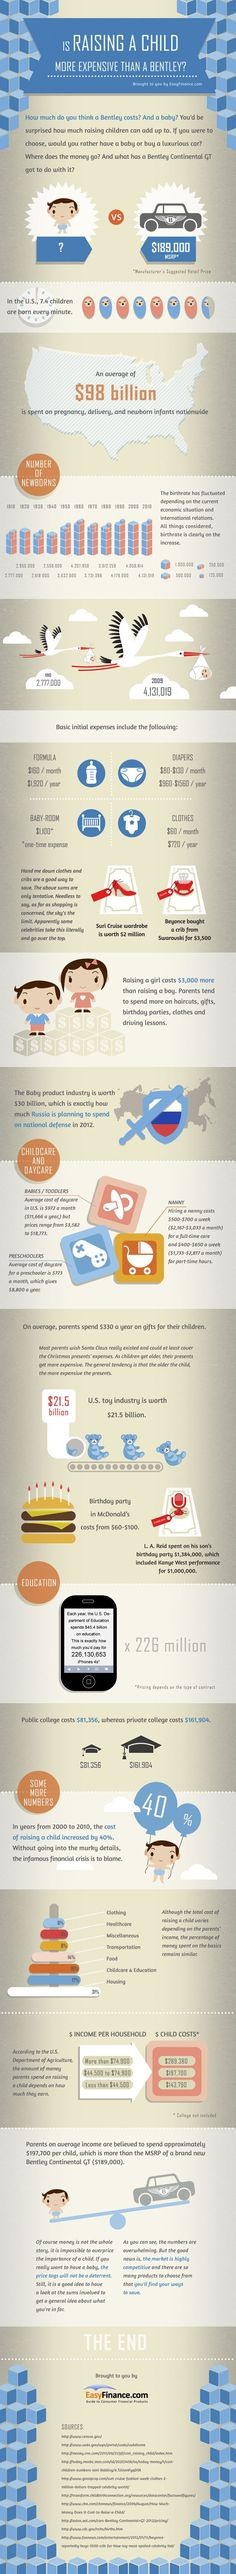 #INFOGRAPHIC: IS RAISING A CHILD MORE EXPENSIVE THAN A BENTLEY?